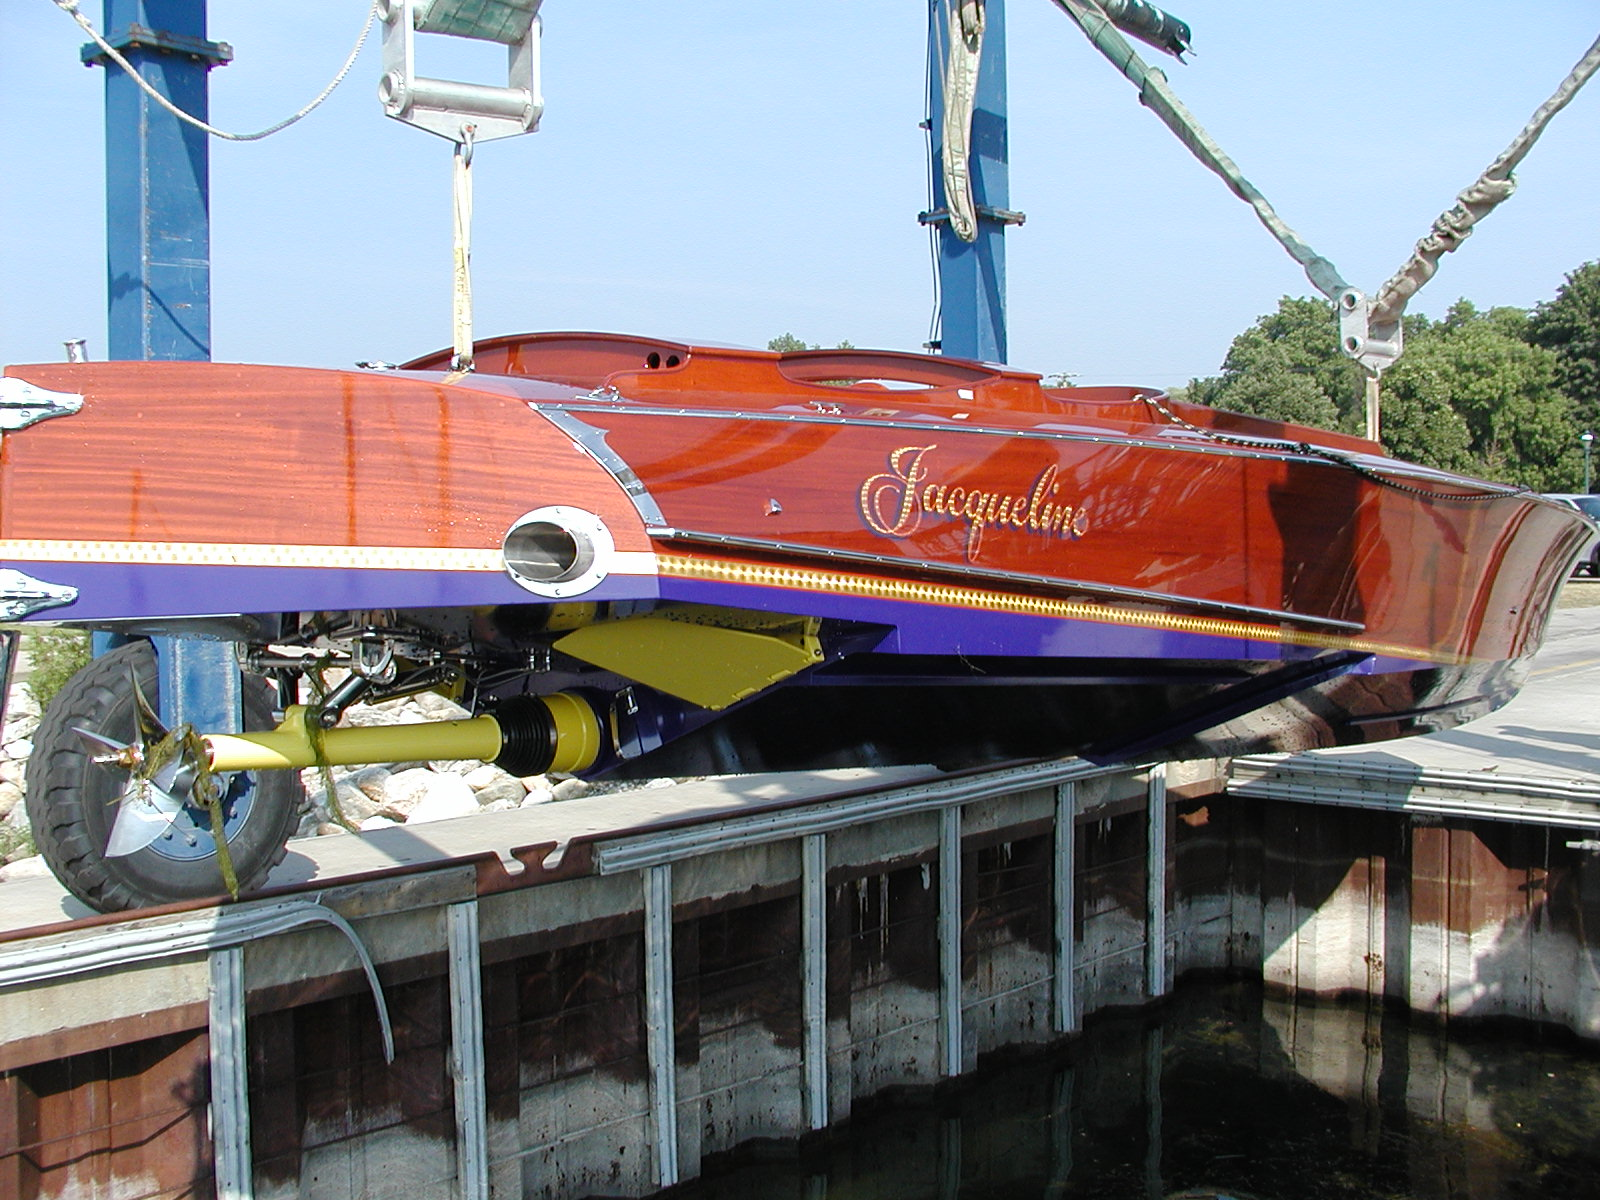 Jacqueline being lowered for water testing